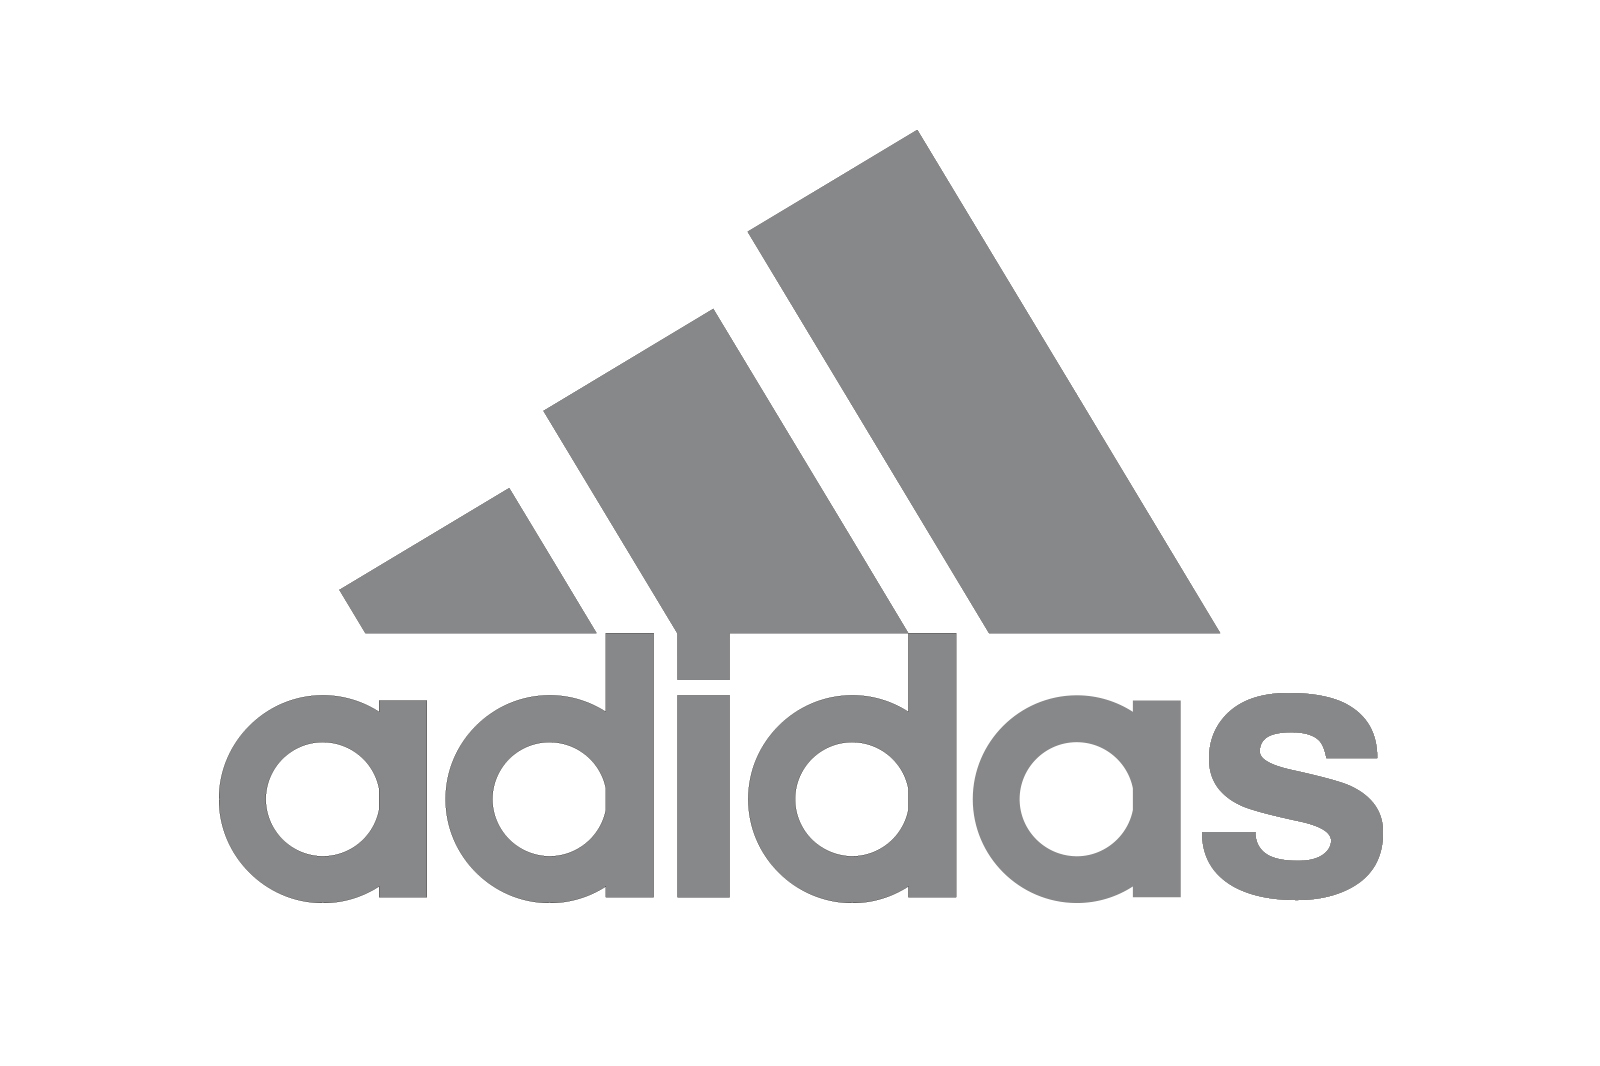 melonkicks-images-intro-adidas.jpg